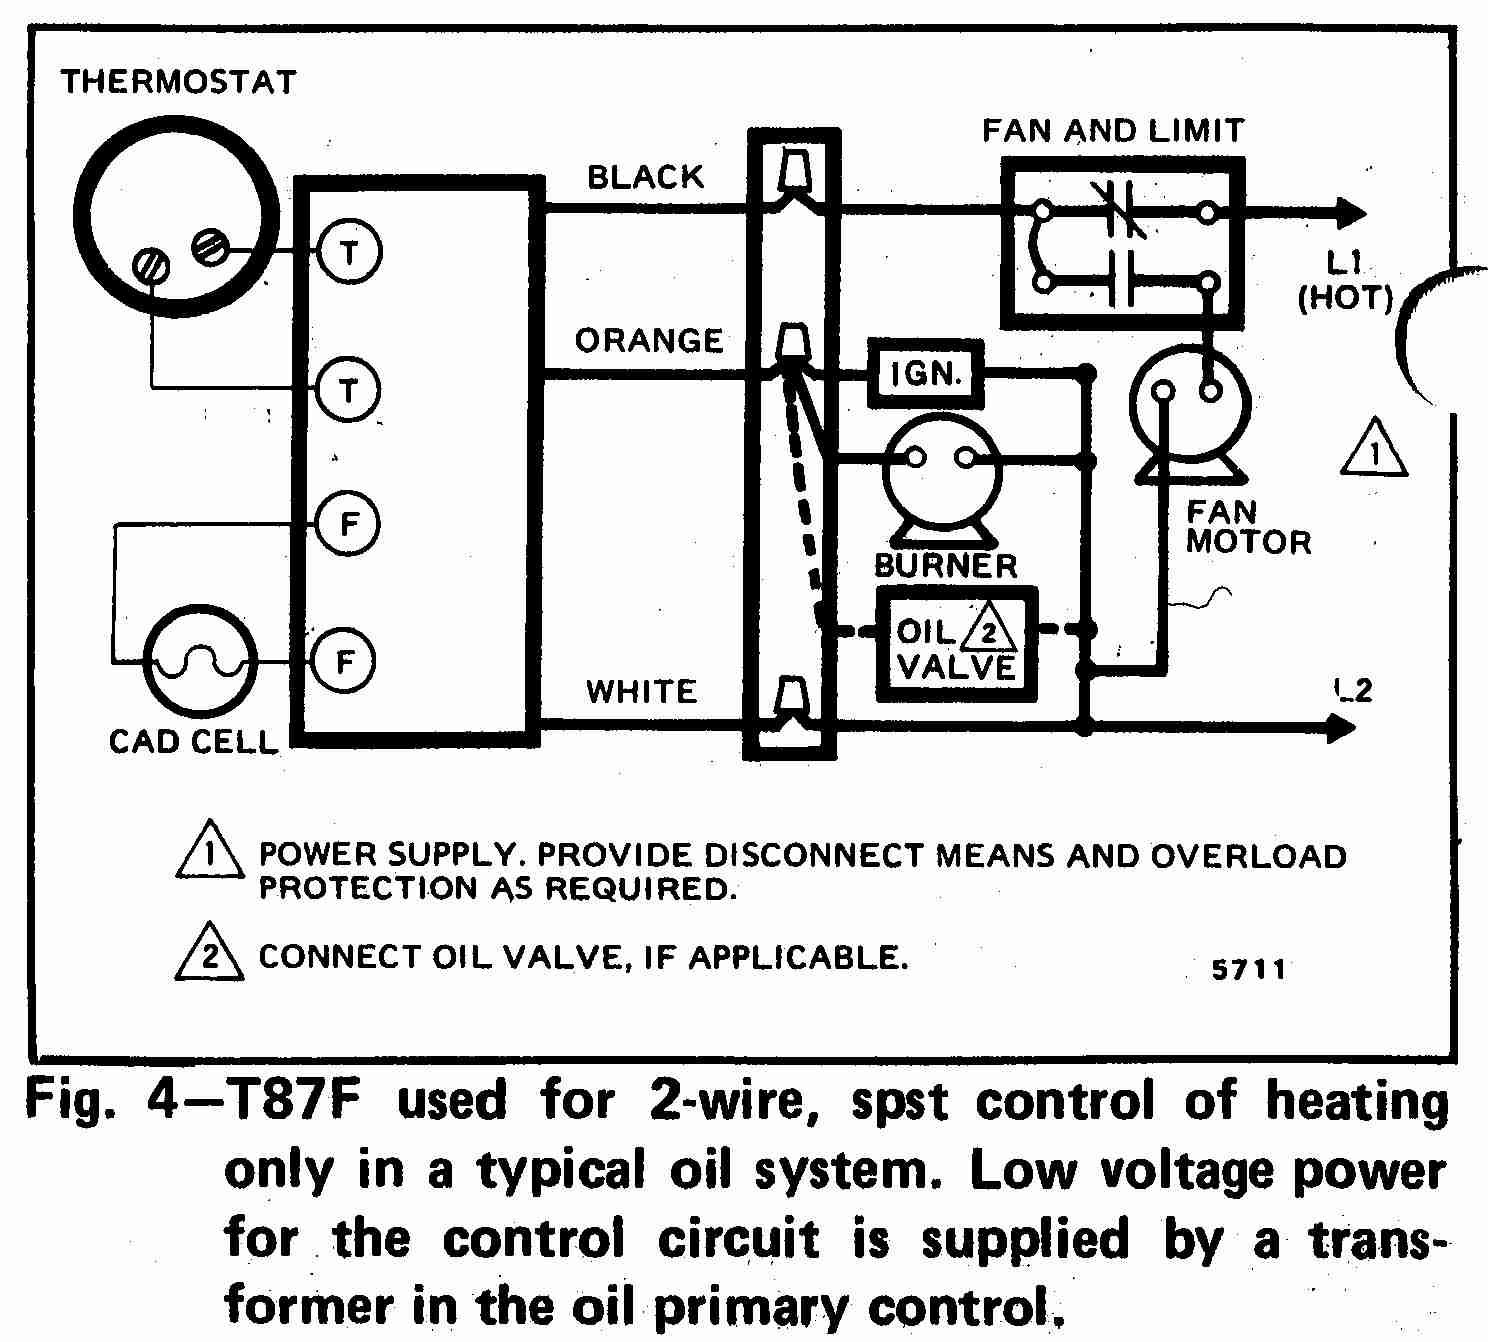 wire thermostat diagram coleman mach thermostat wiring diagram schematics and wiring thermostat digital 12v 7 wire for coleman h